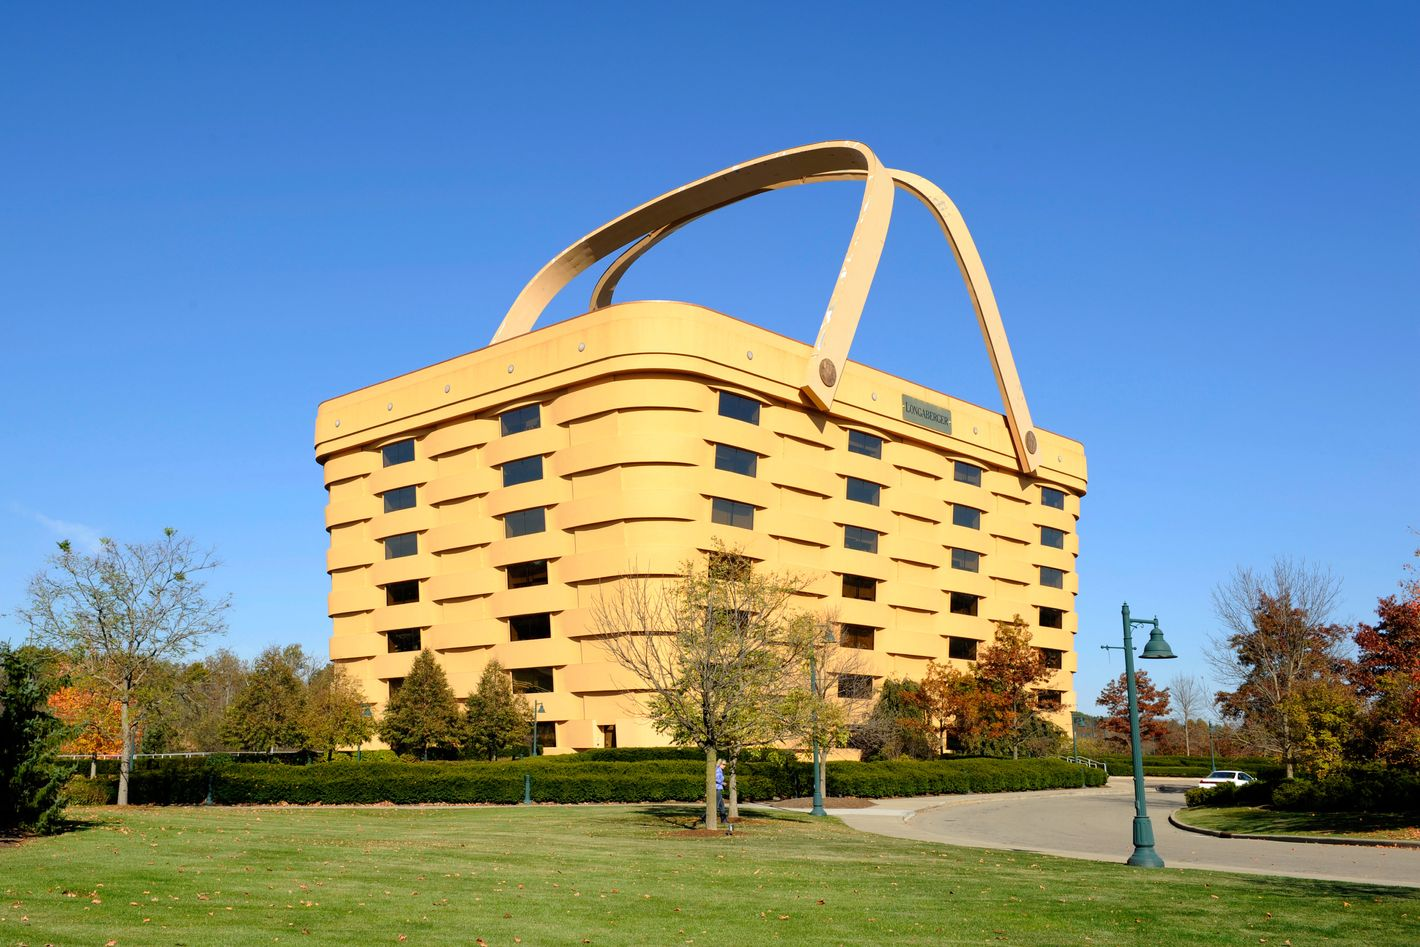 No One Will Buy This Building That Looks Like A Basket